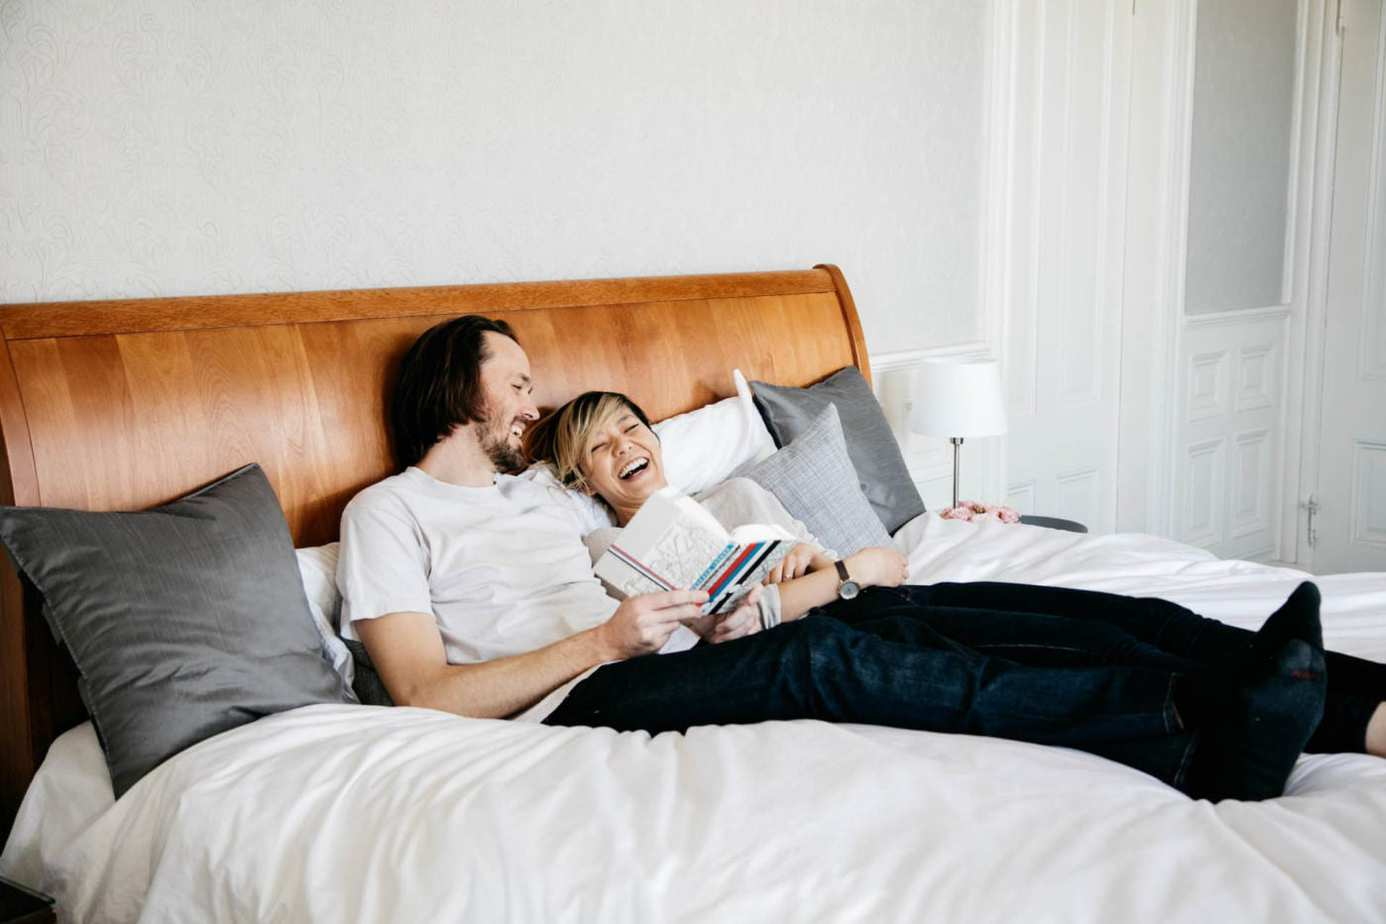 Nectar Mattress Privacy Policy